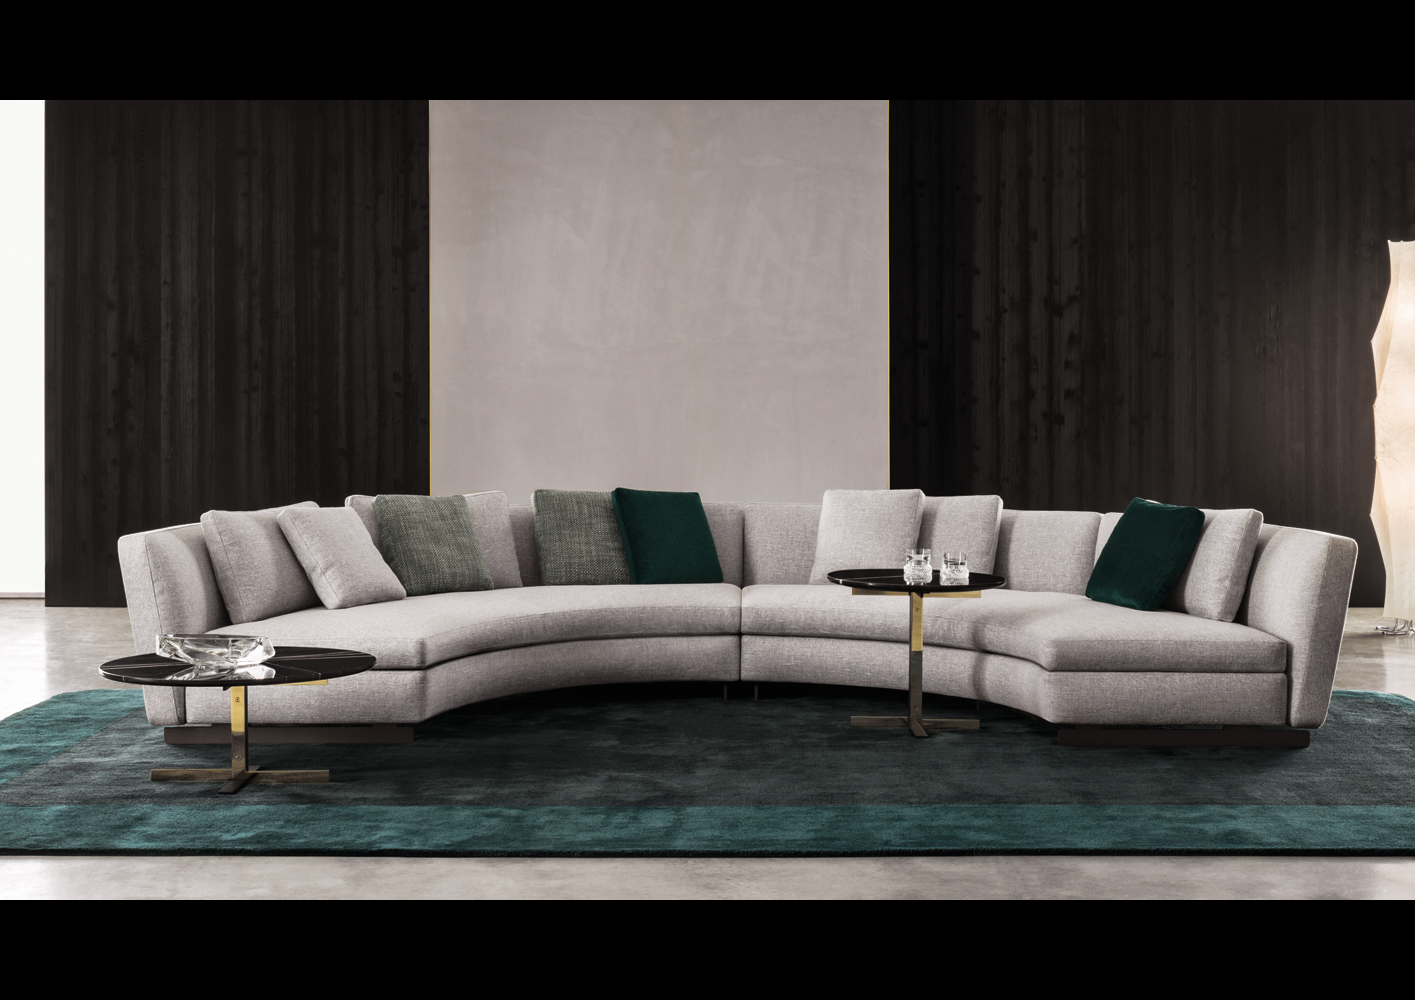 Design Bank Minotti.20 Modish Minotti Sofas And Seating Systems